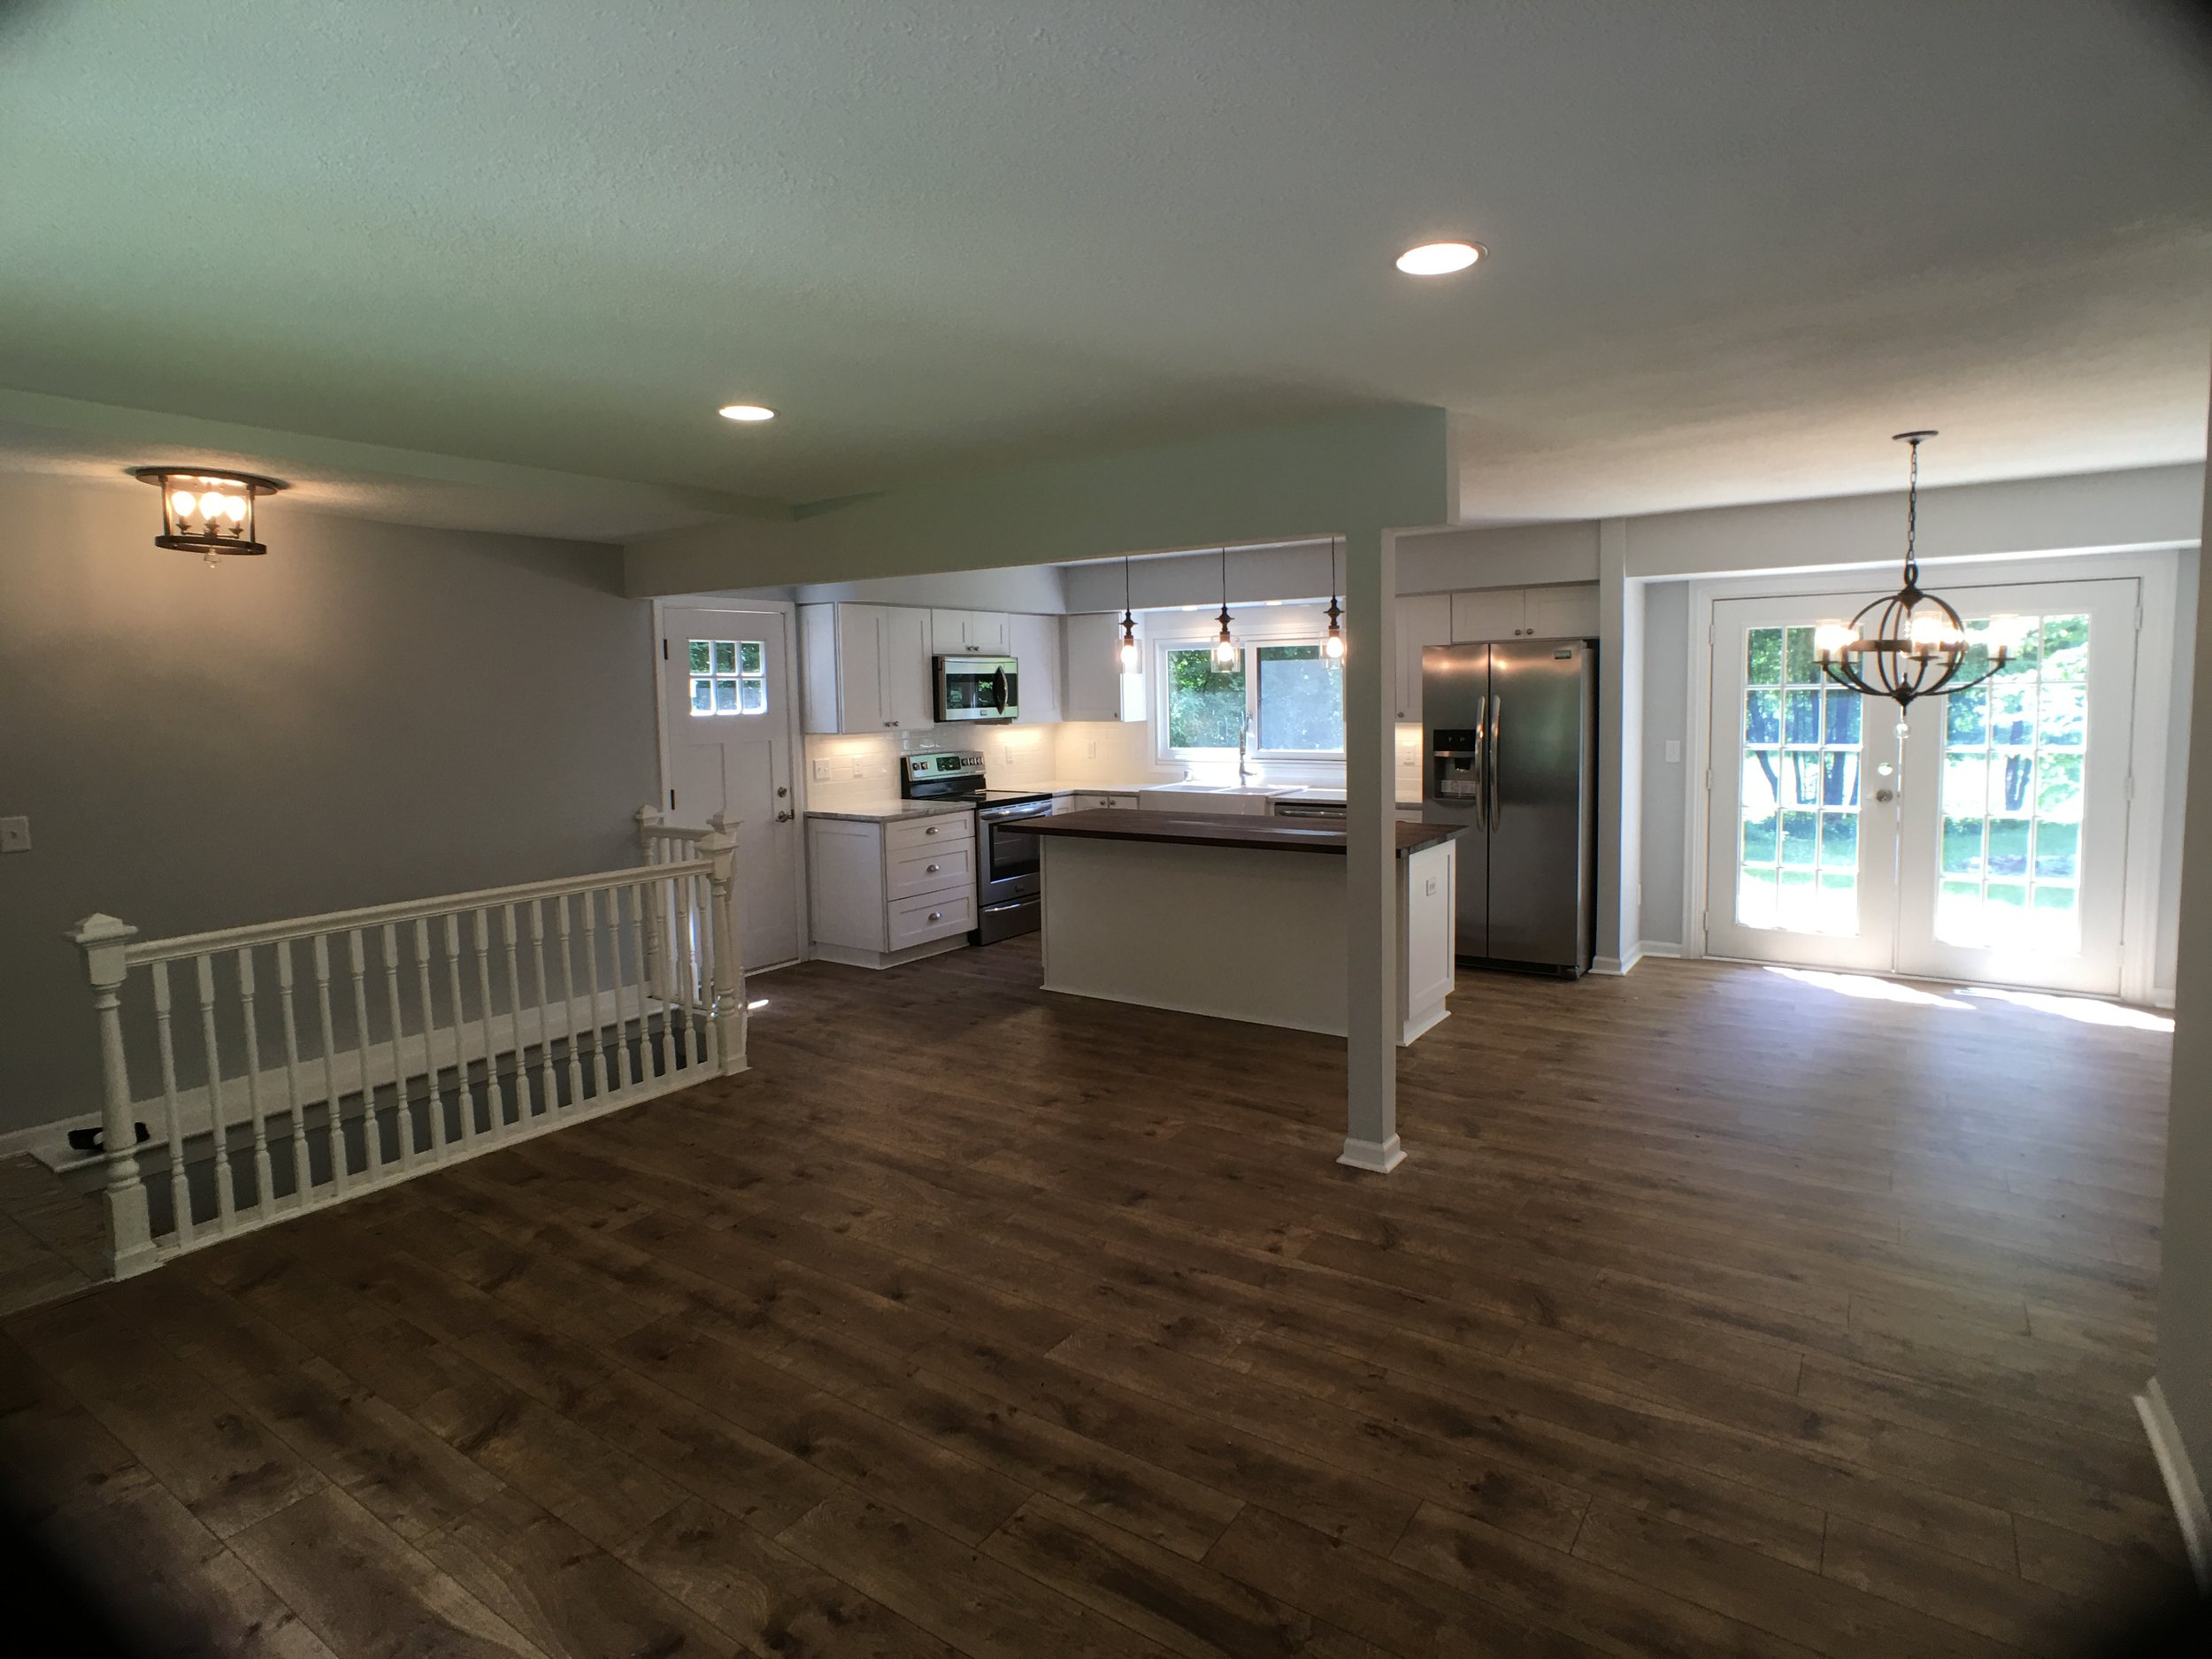 How to Improve the Look of a Beam or Post